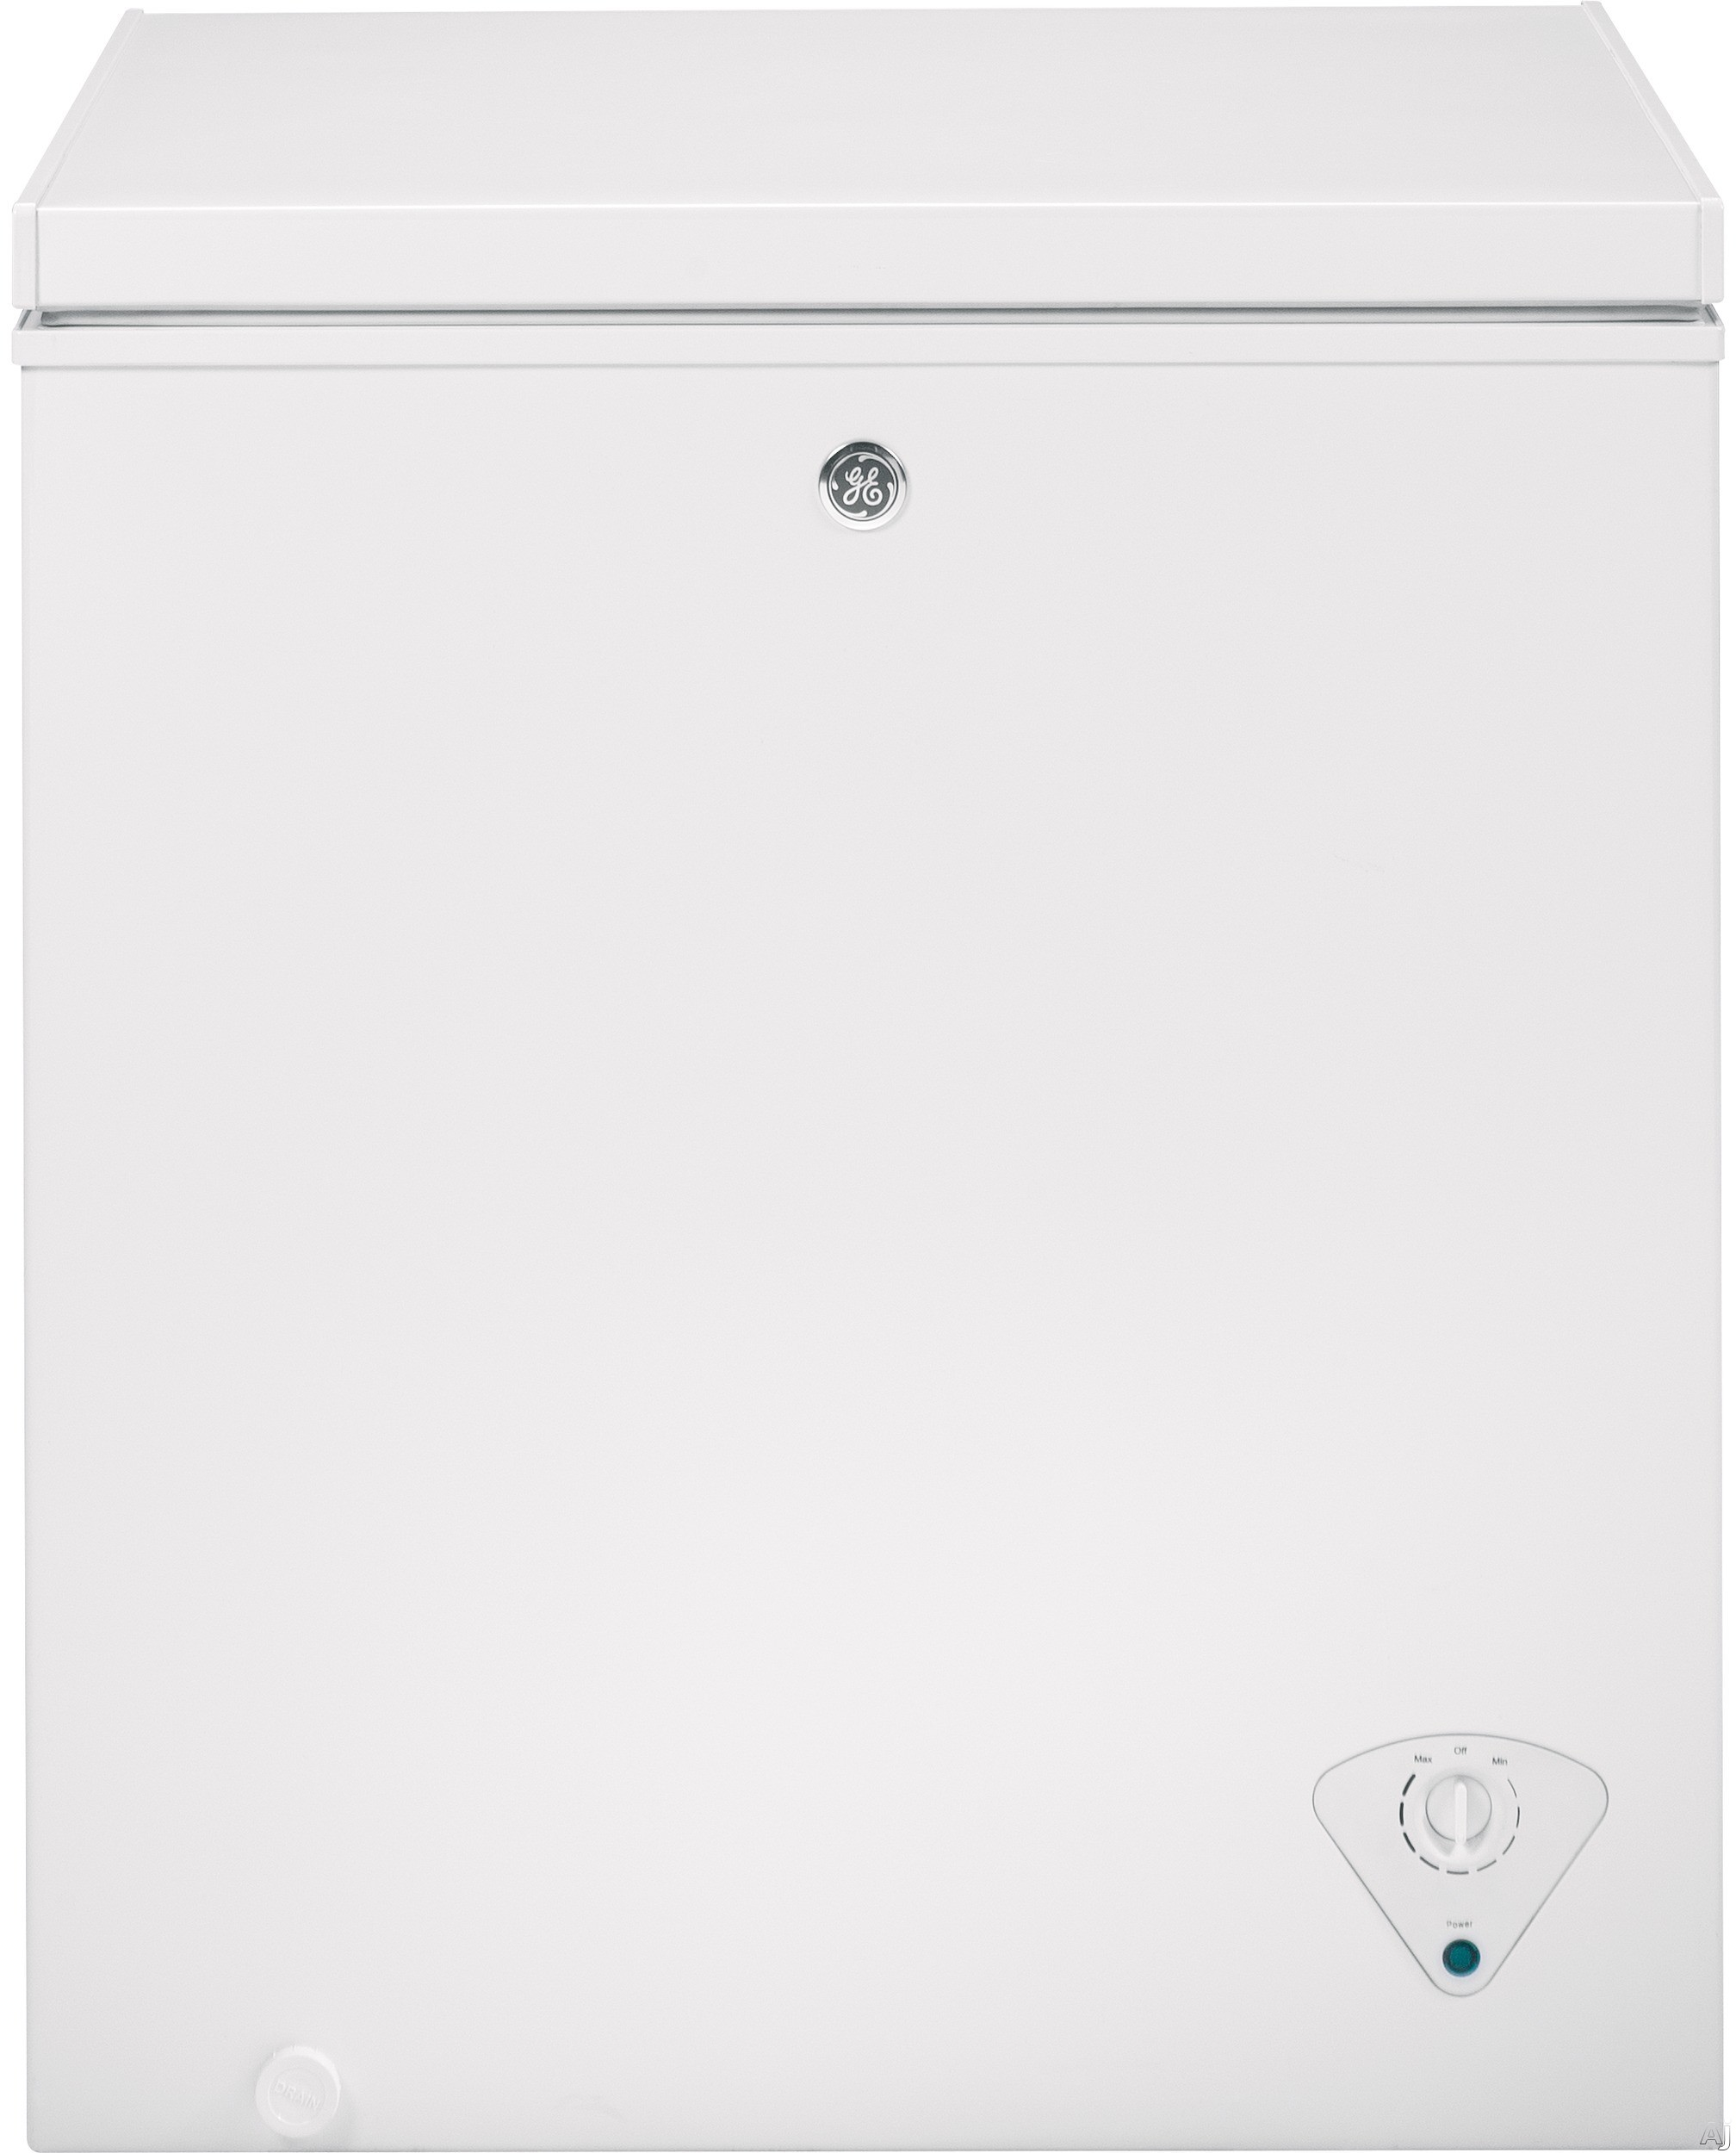 "Image of ""GE FCM5SKWW 5.0 cu. ft. Manual Defrost Chest Freezer with 1 Lift-Out Sliding Storage Basket, Power """"On"""" Light, Recessed Handles and Adjustable Temperature Control"""